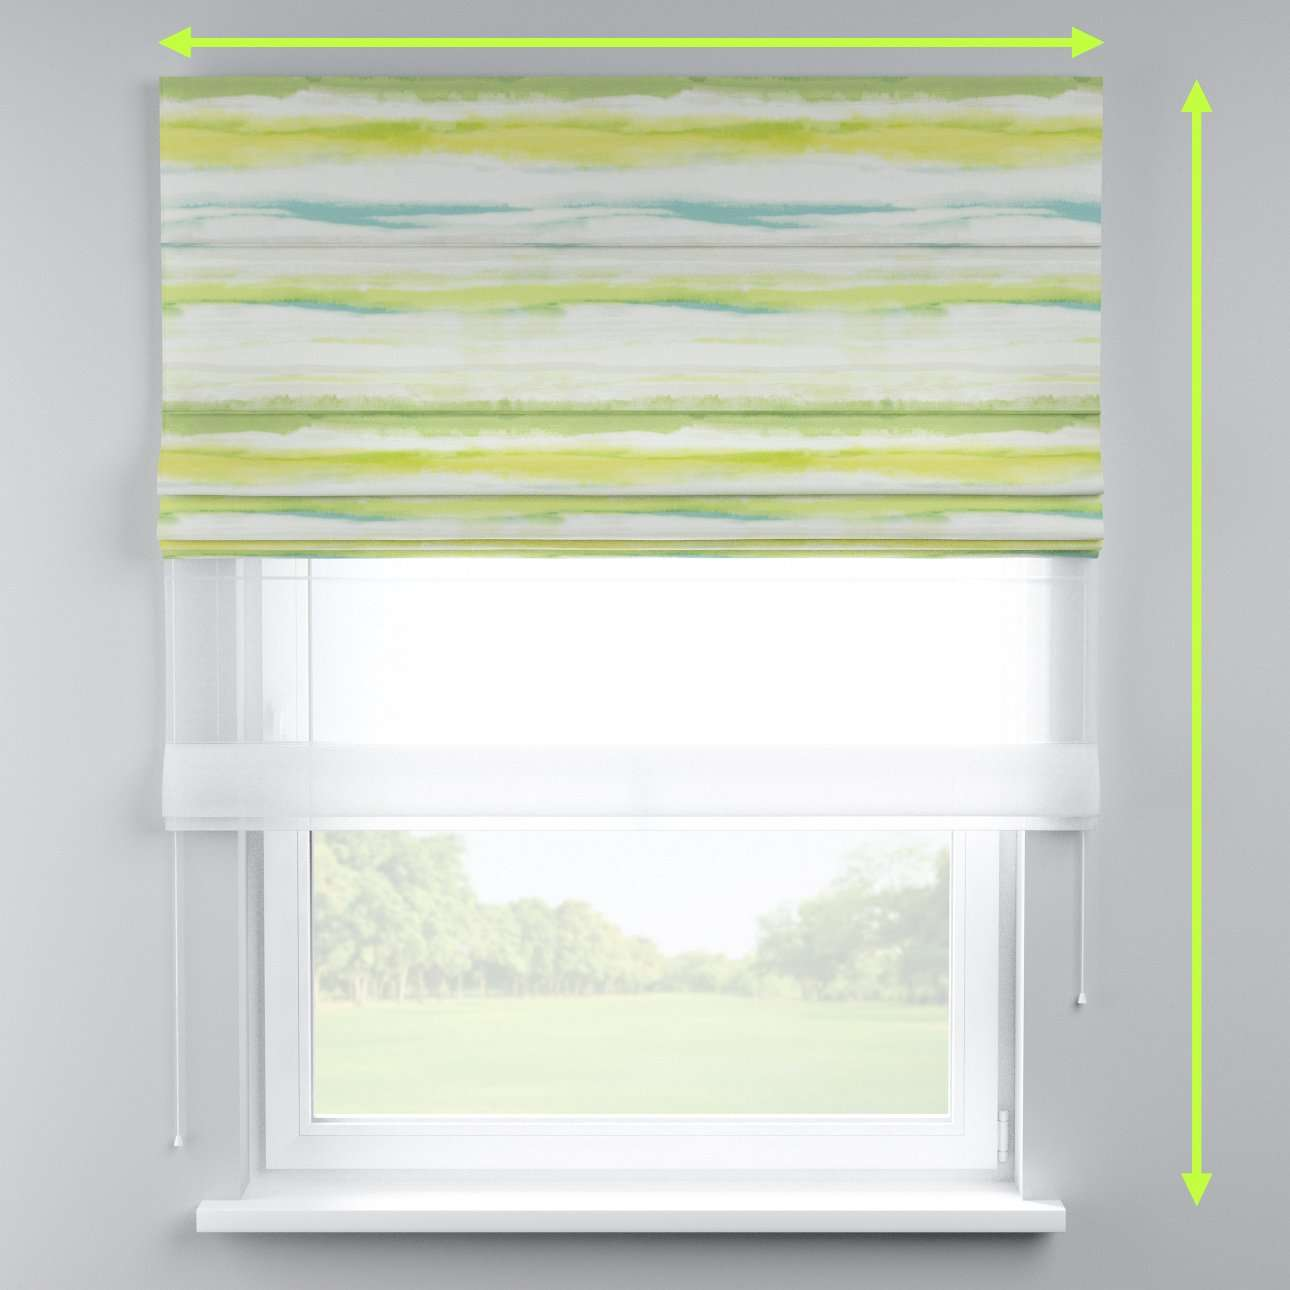 Voile and fabric roman blind (DUO II) in collection Aquarelle, fabric: 140-68